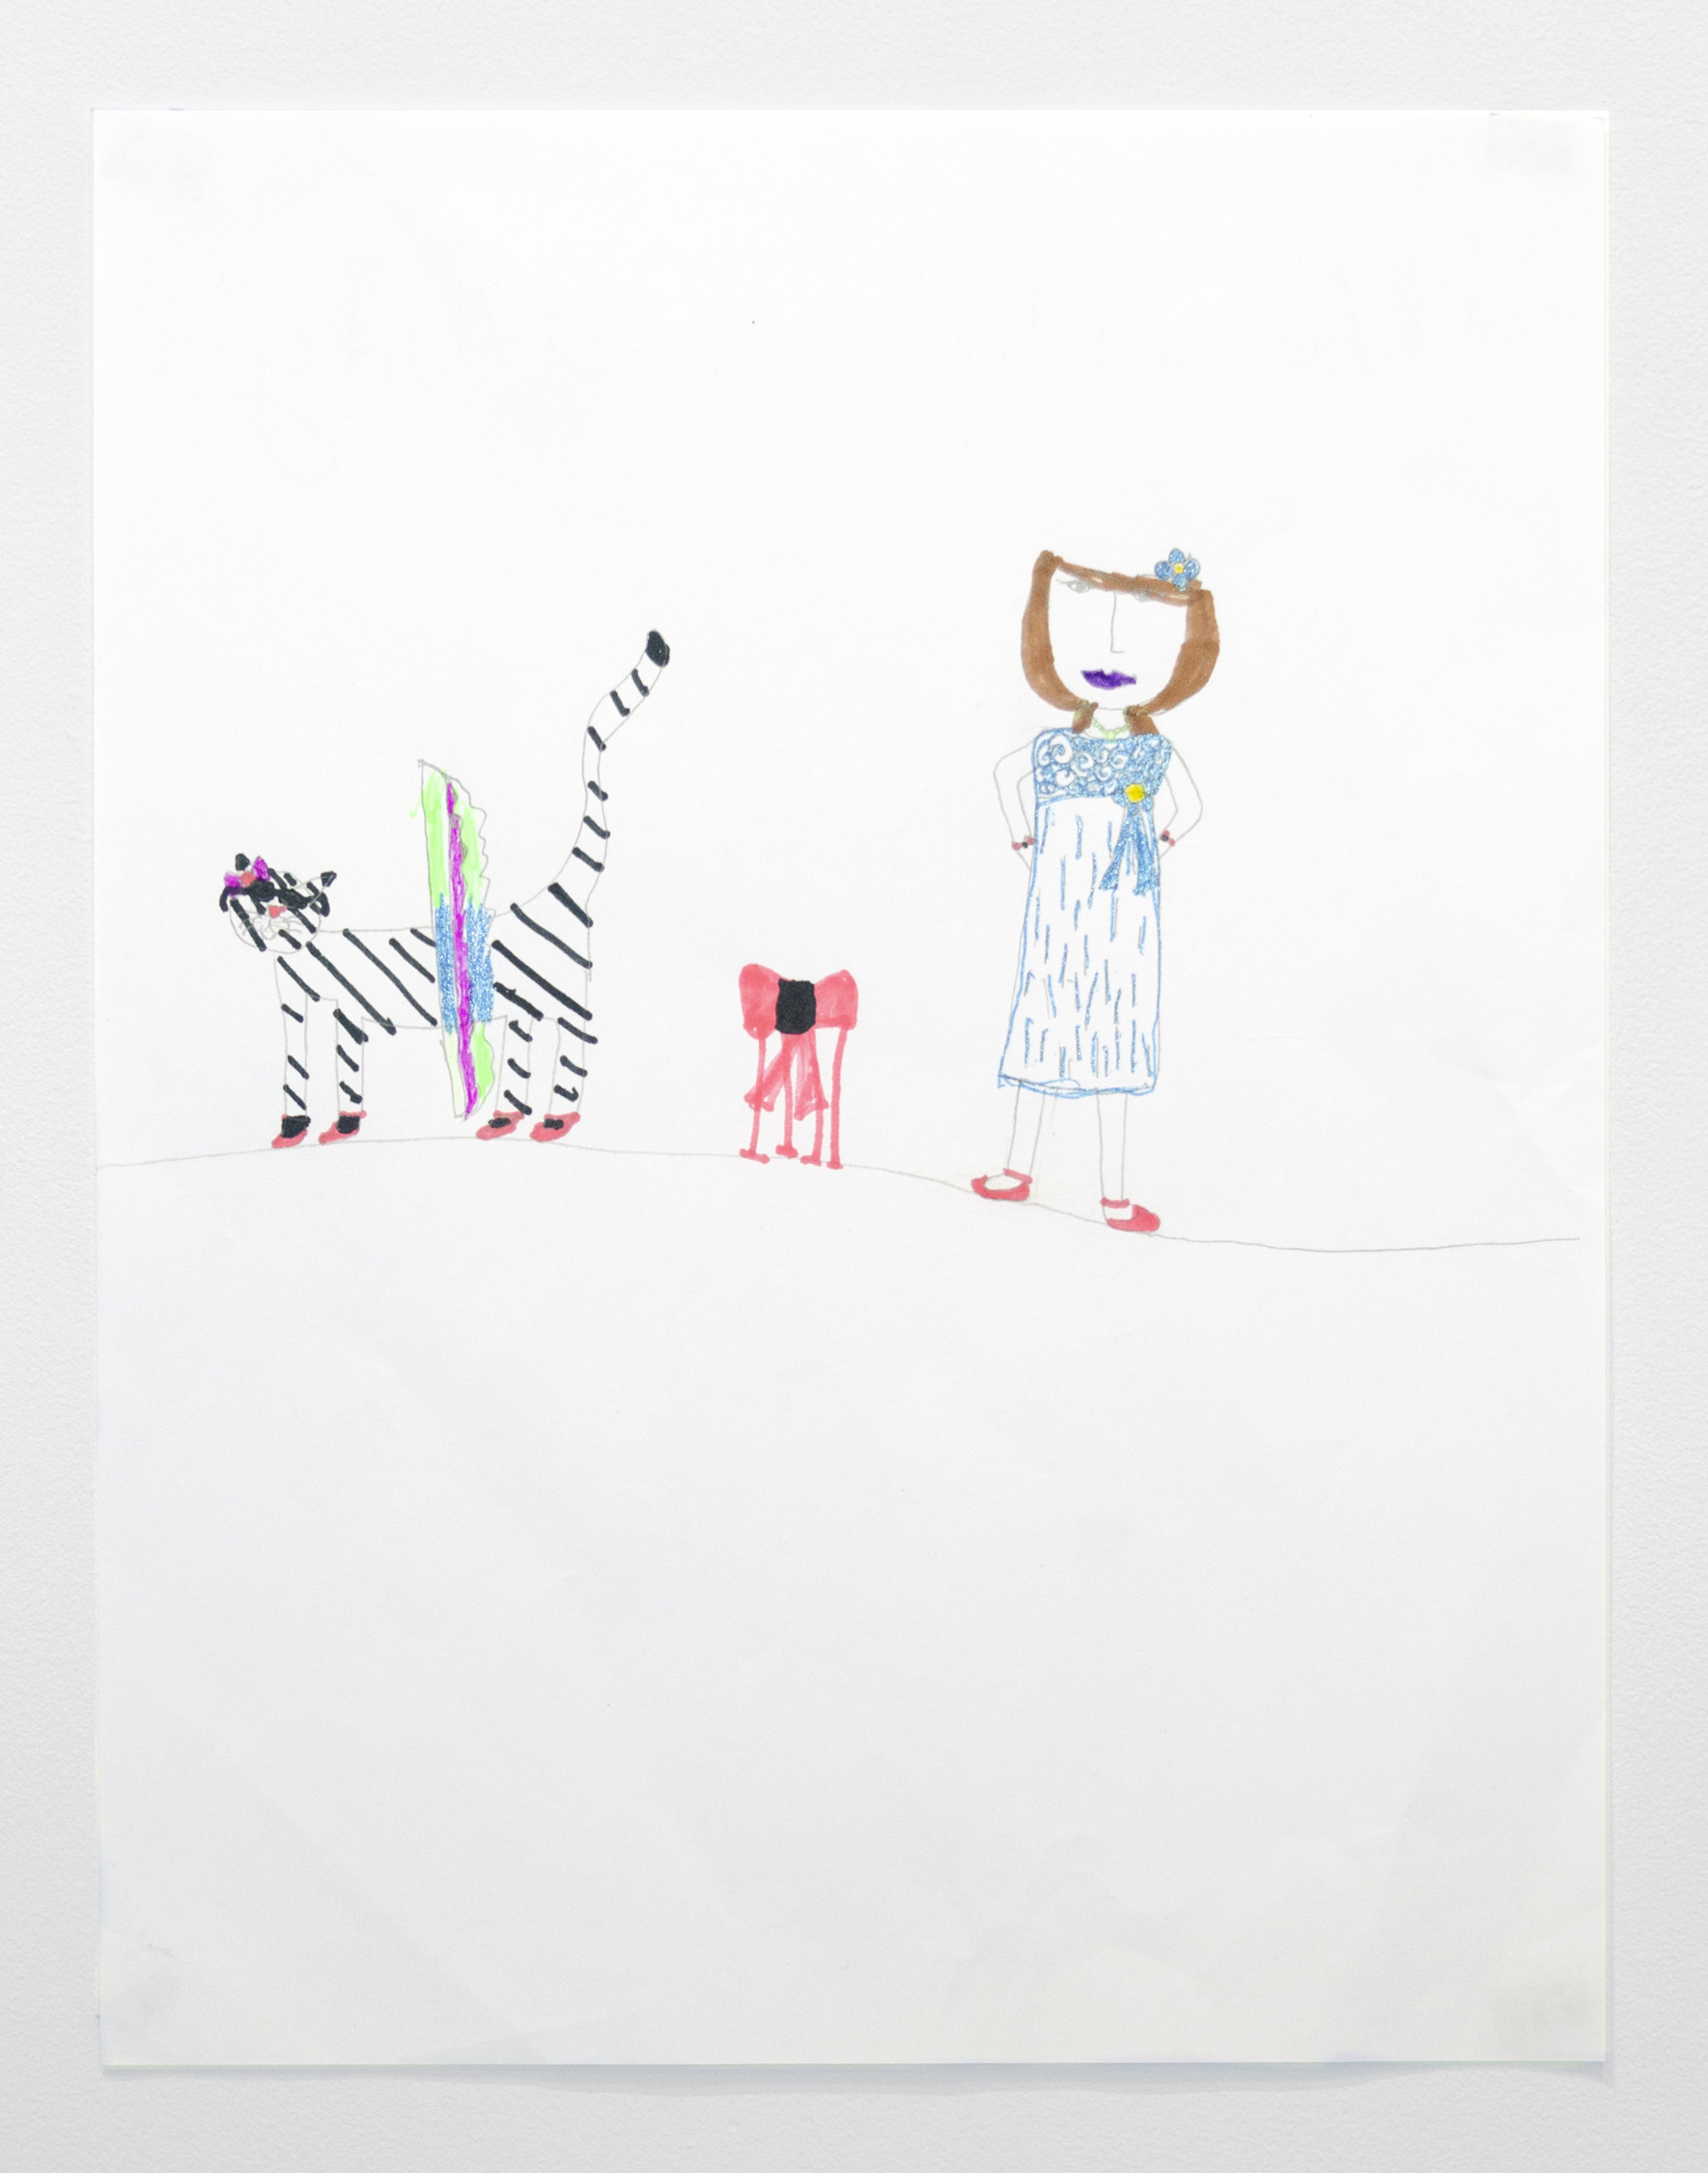 Adelae DeNike Palmer   Me and that Cat , 2019 Marker and pencil on paper 11.25 x 8.5 inches (28.5 x 21.5 cm)  Starting bid: $20